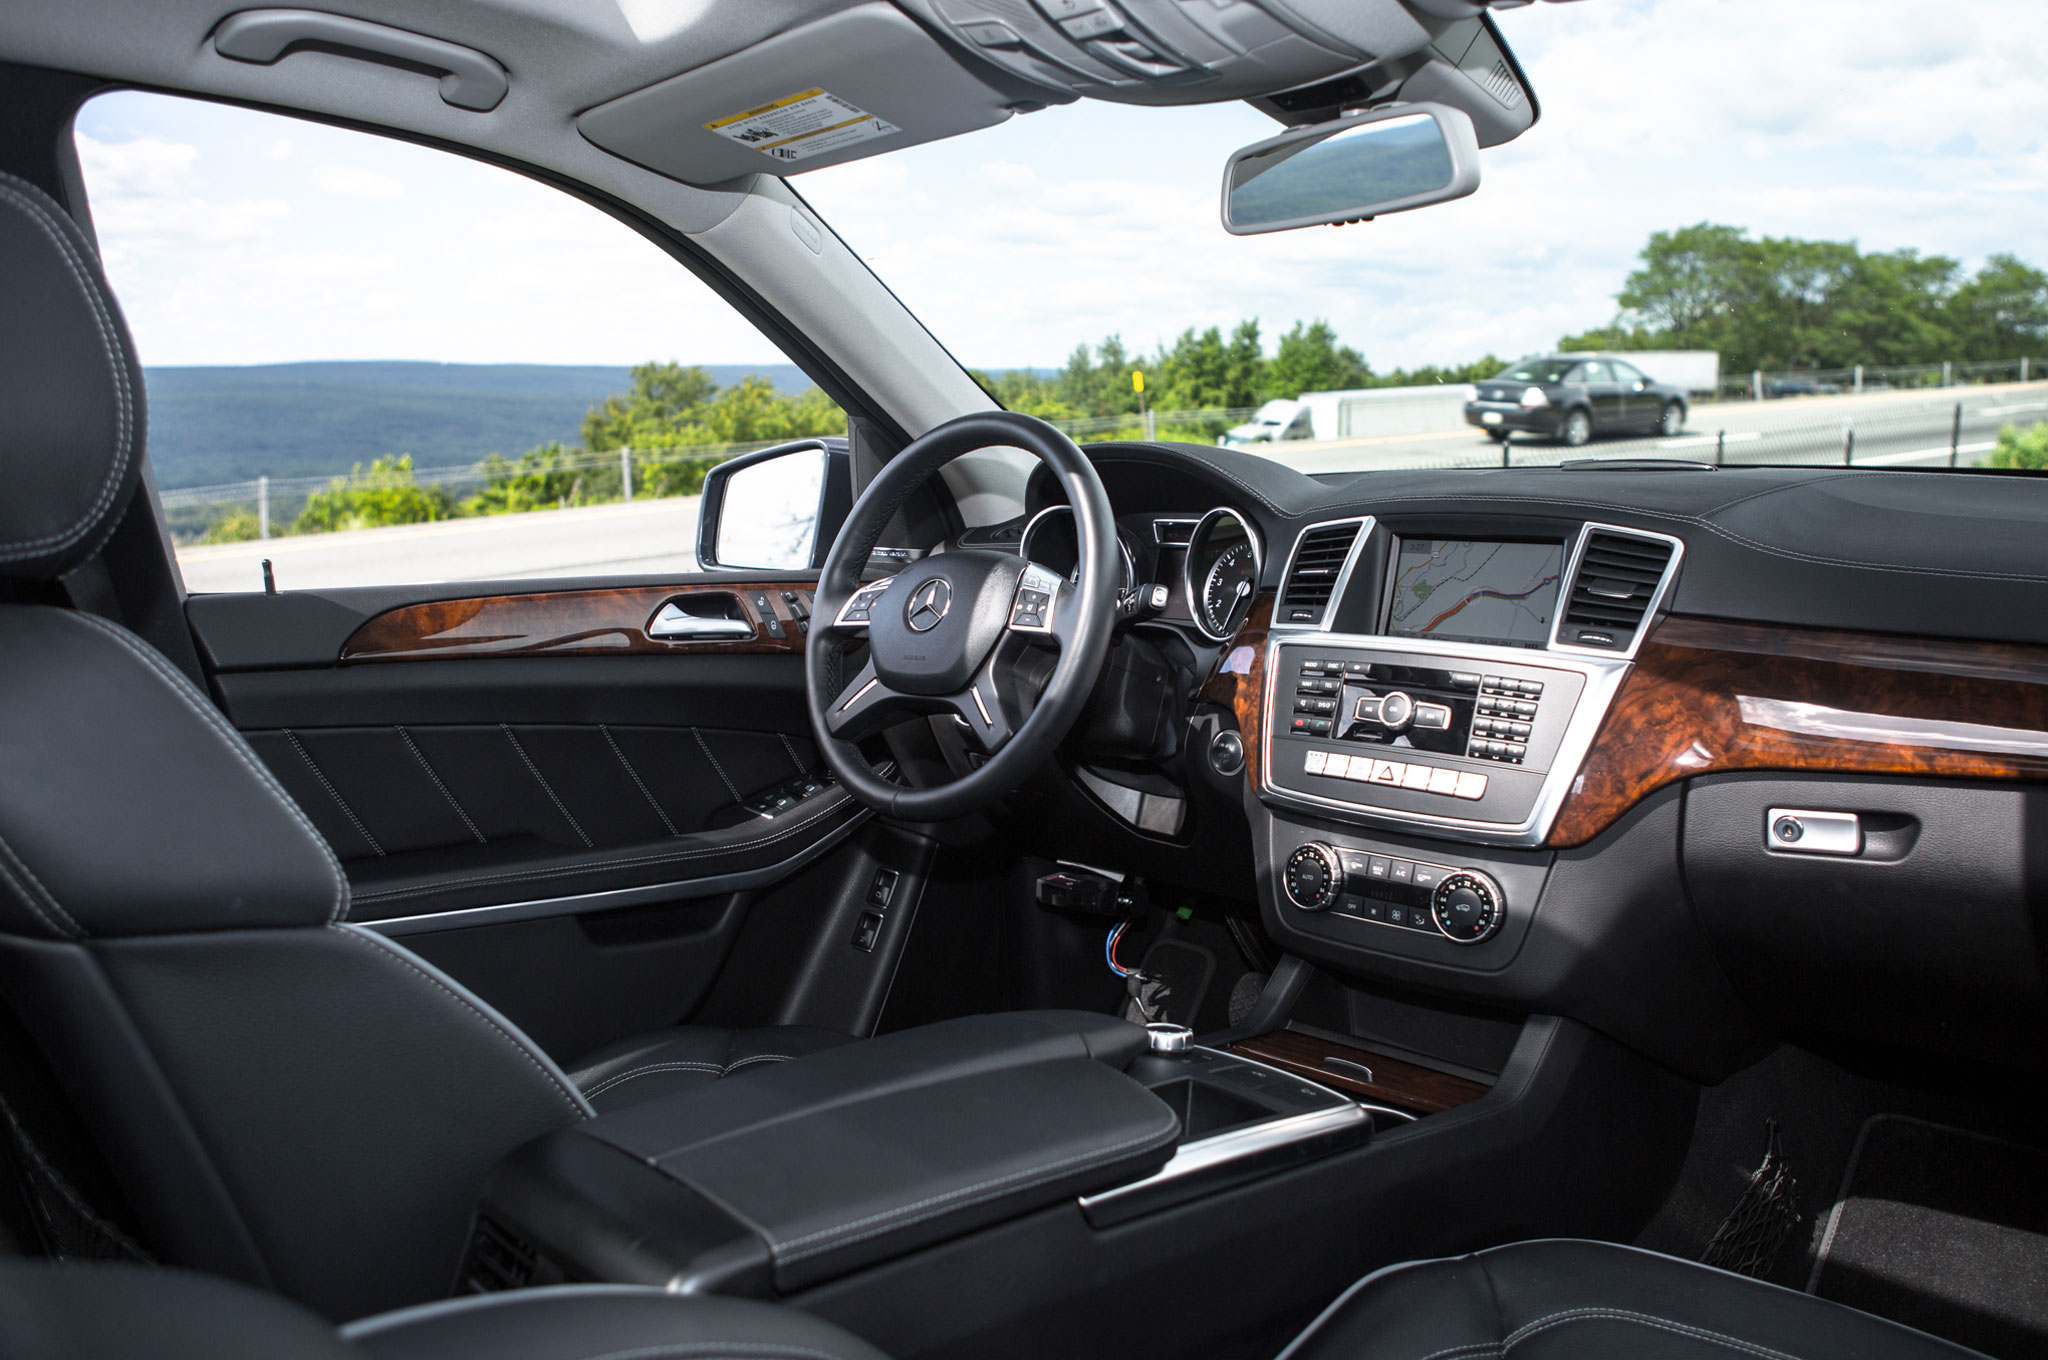 2013-Mercedes-Benz-GL450-front-interior Interesting Info About 2013 Mercedes Gl450 for Sale